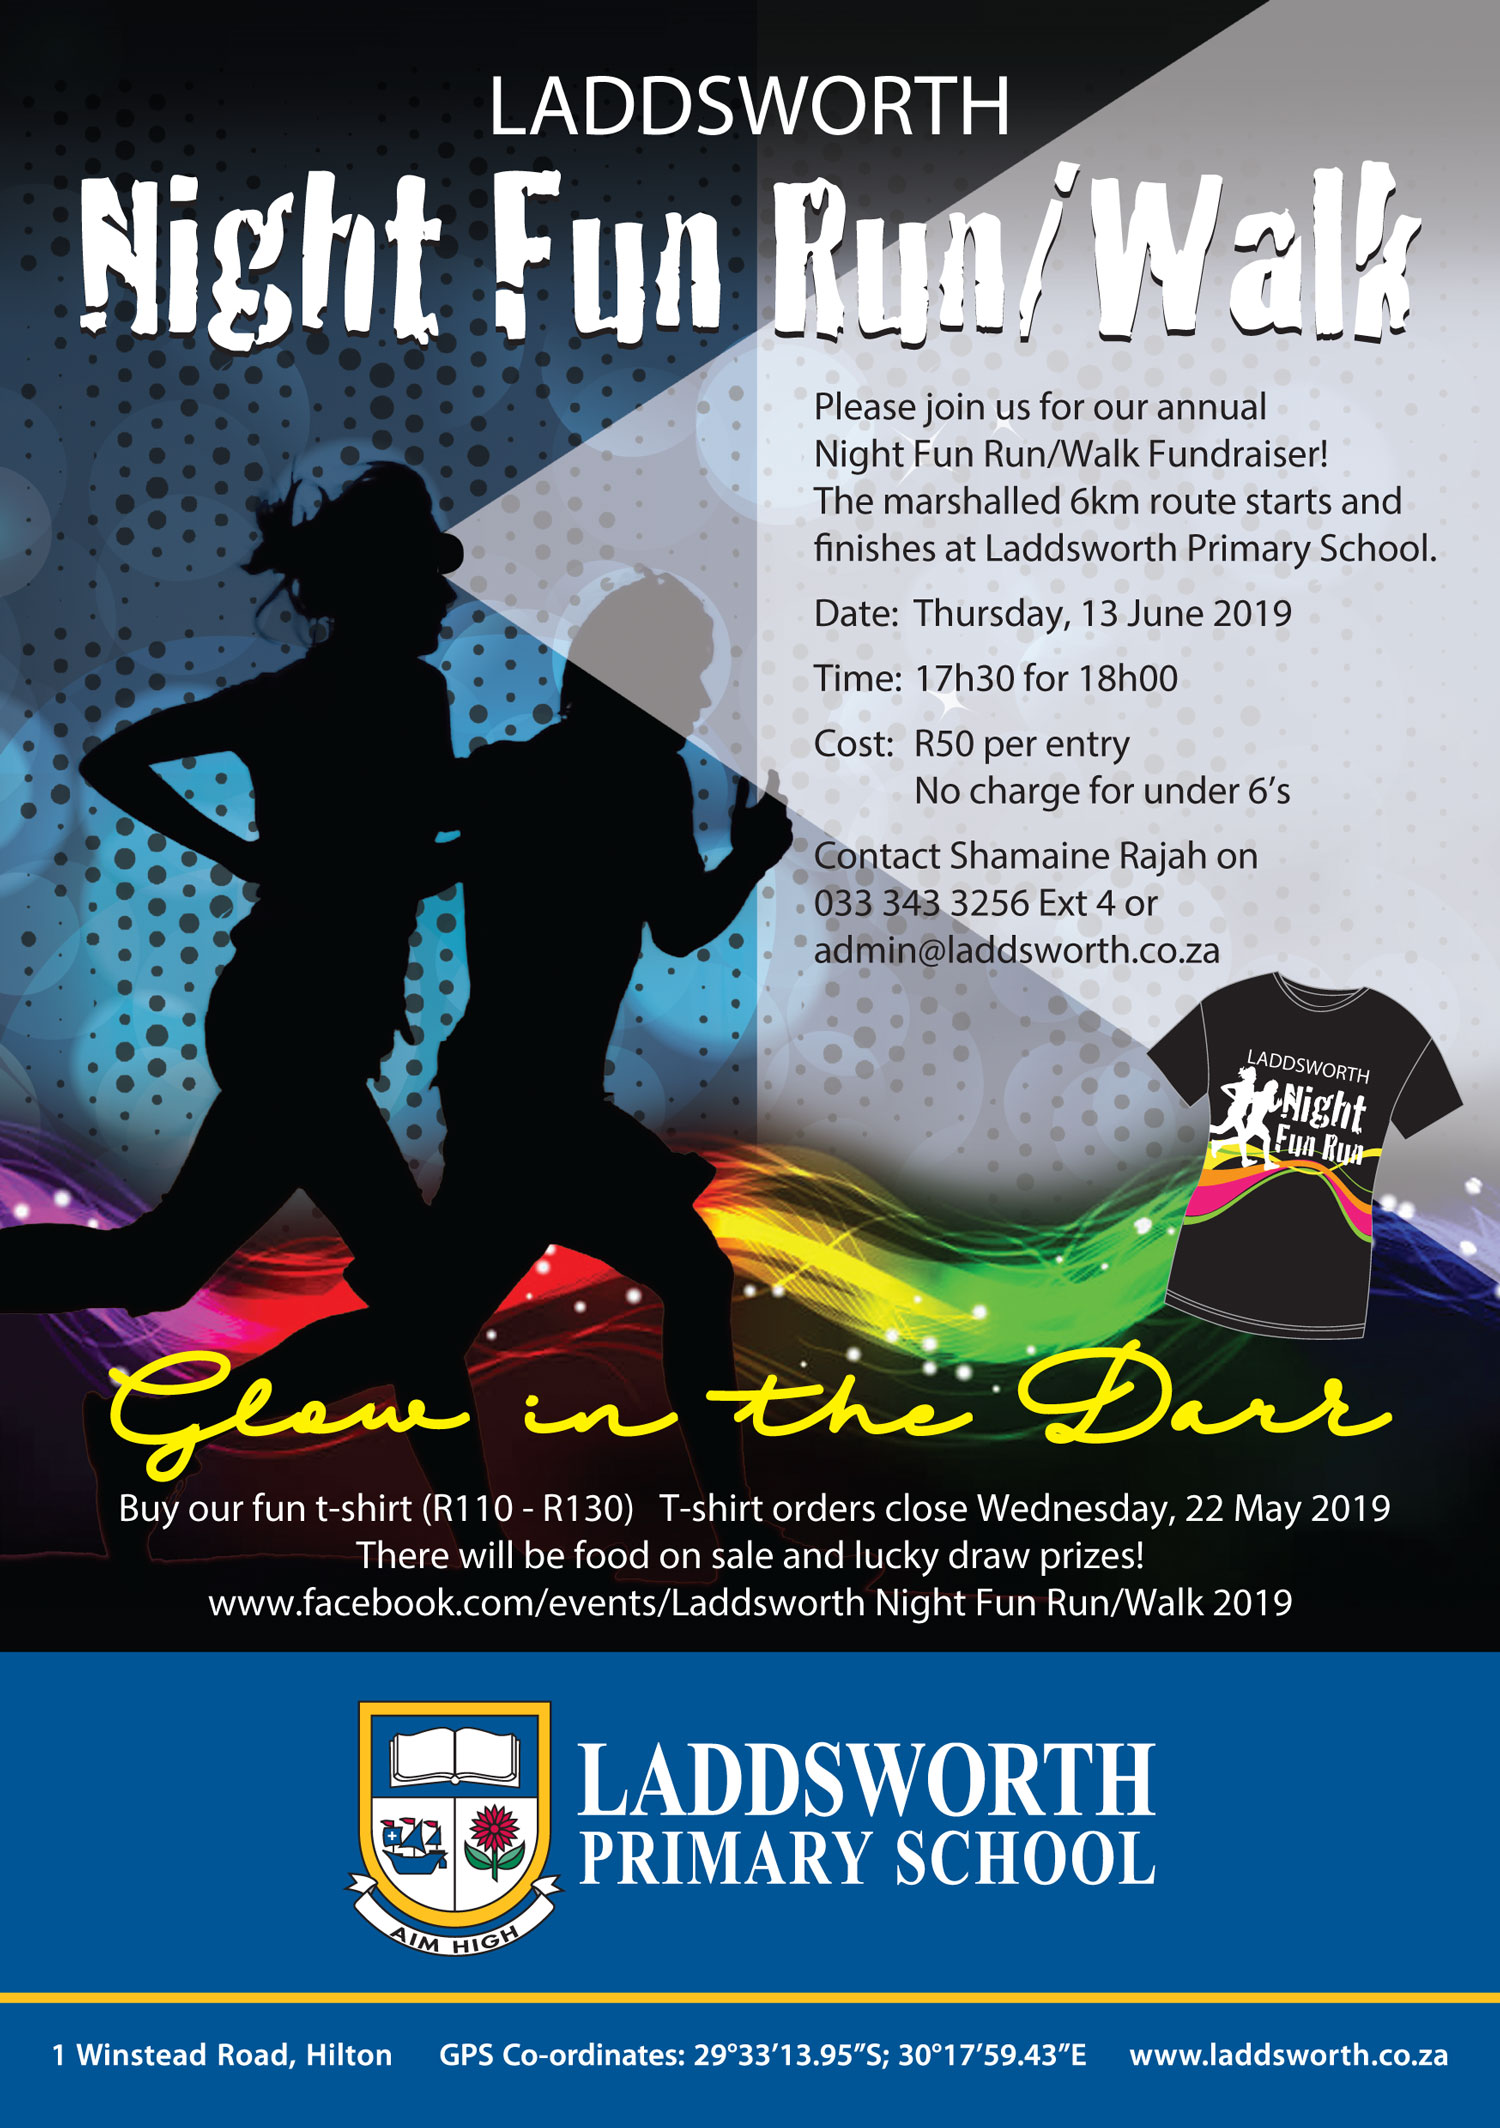 LW Night Fun Run 2019 A5 Flyer copy copy